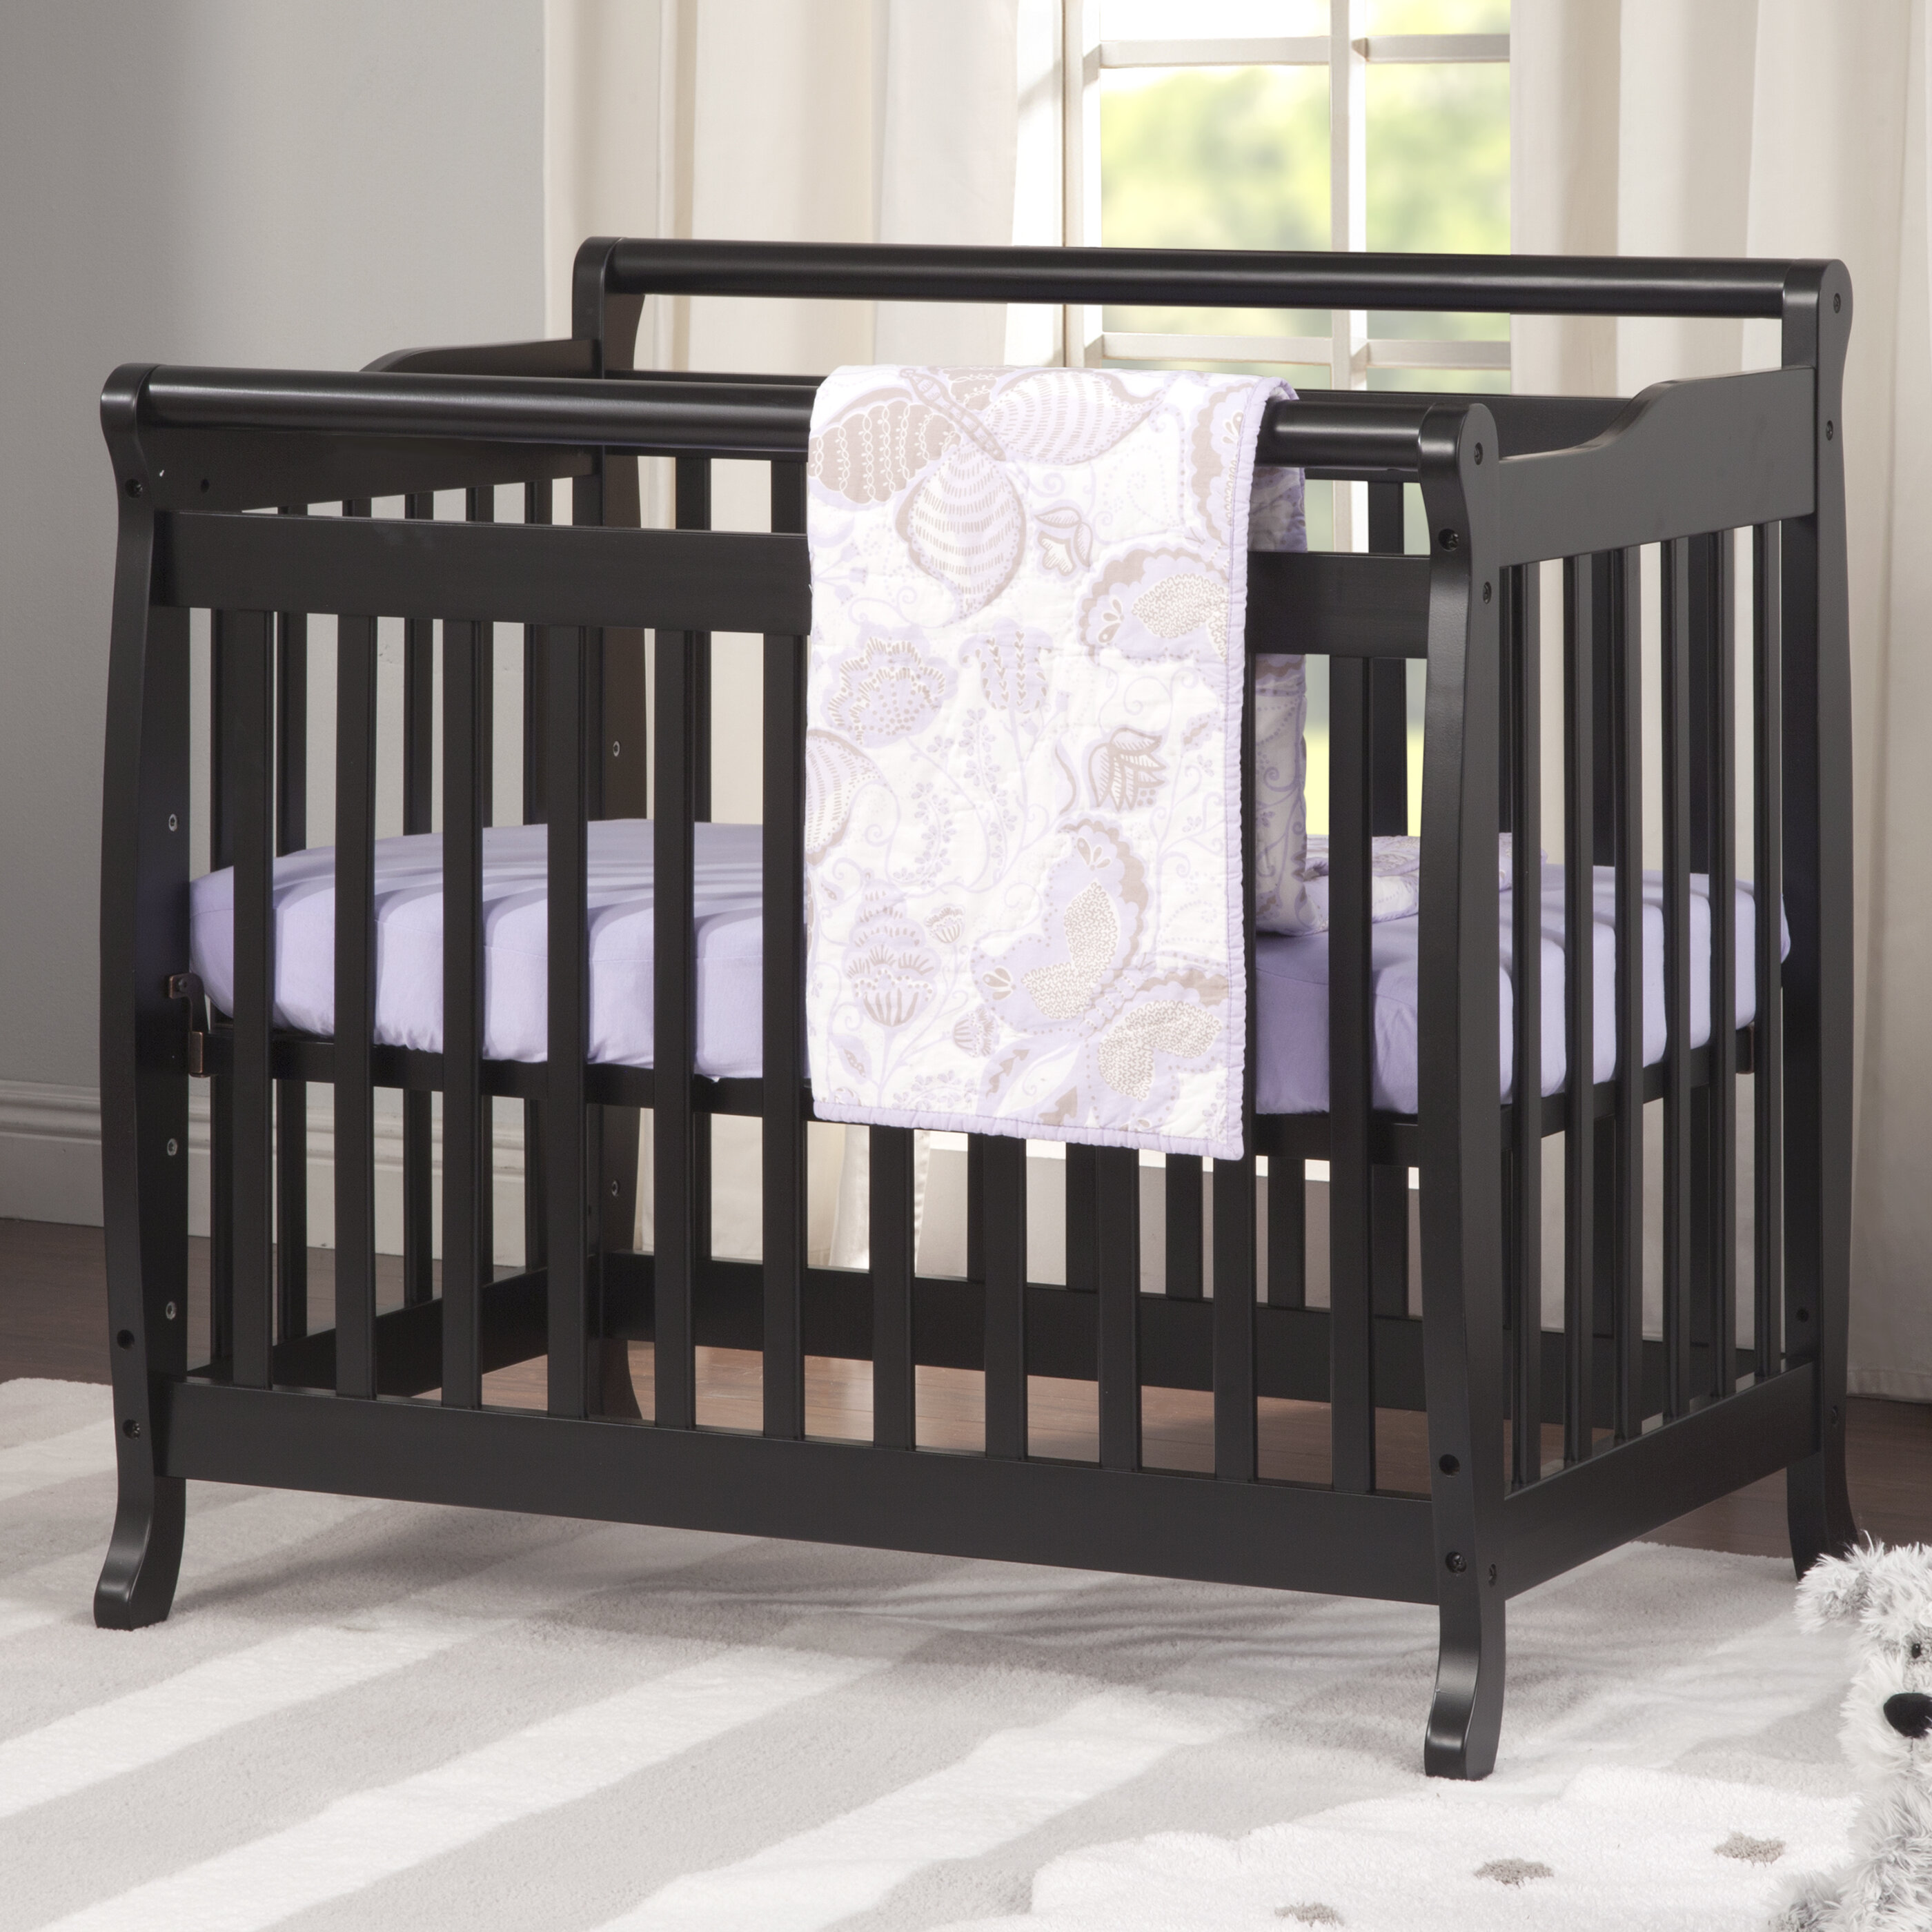 hudson babyletto cribs lind in harlow bed toddler s manchester jenny convertible crib davinci